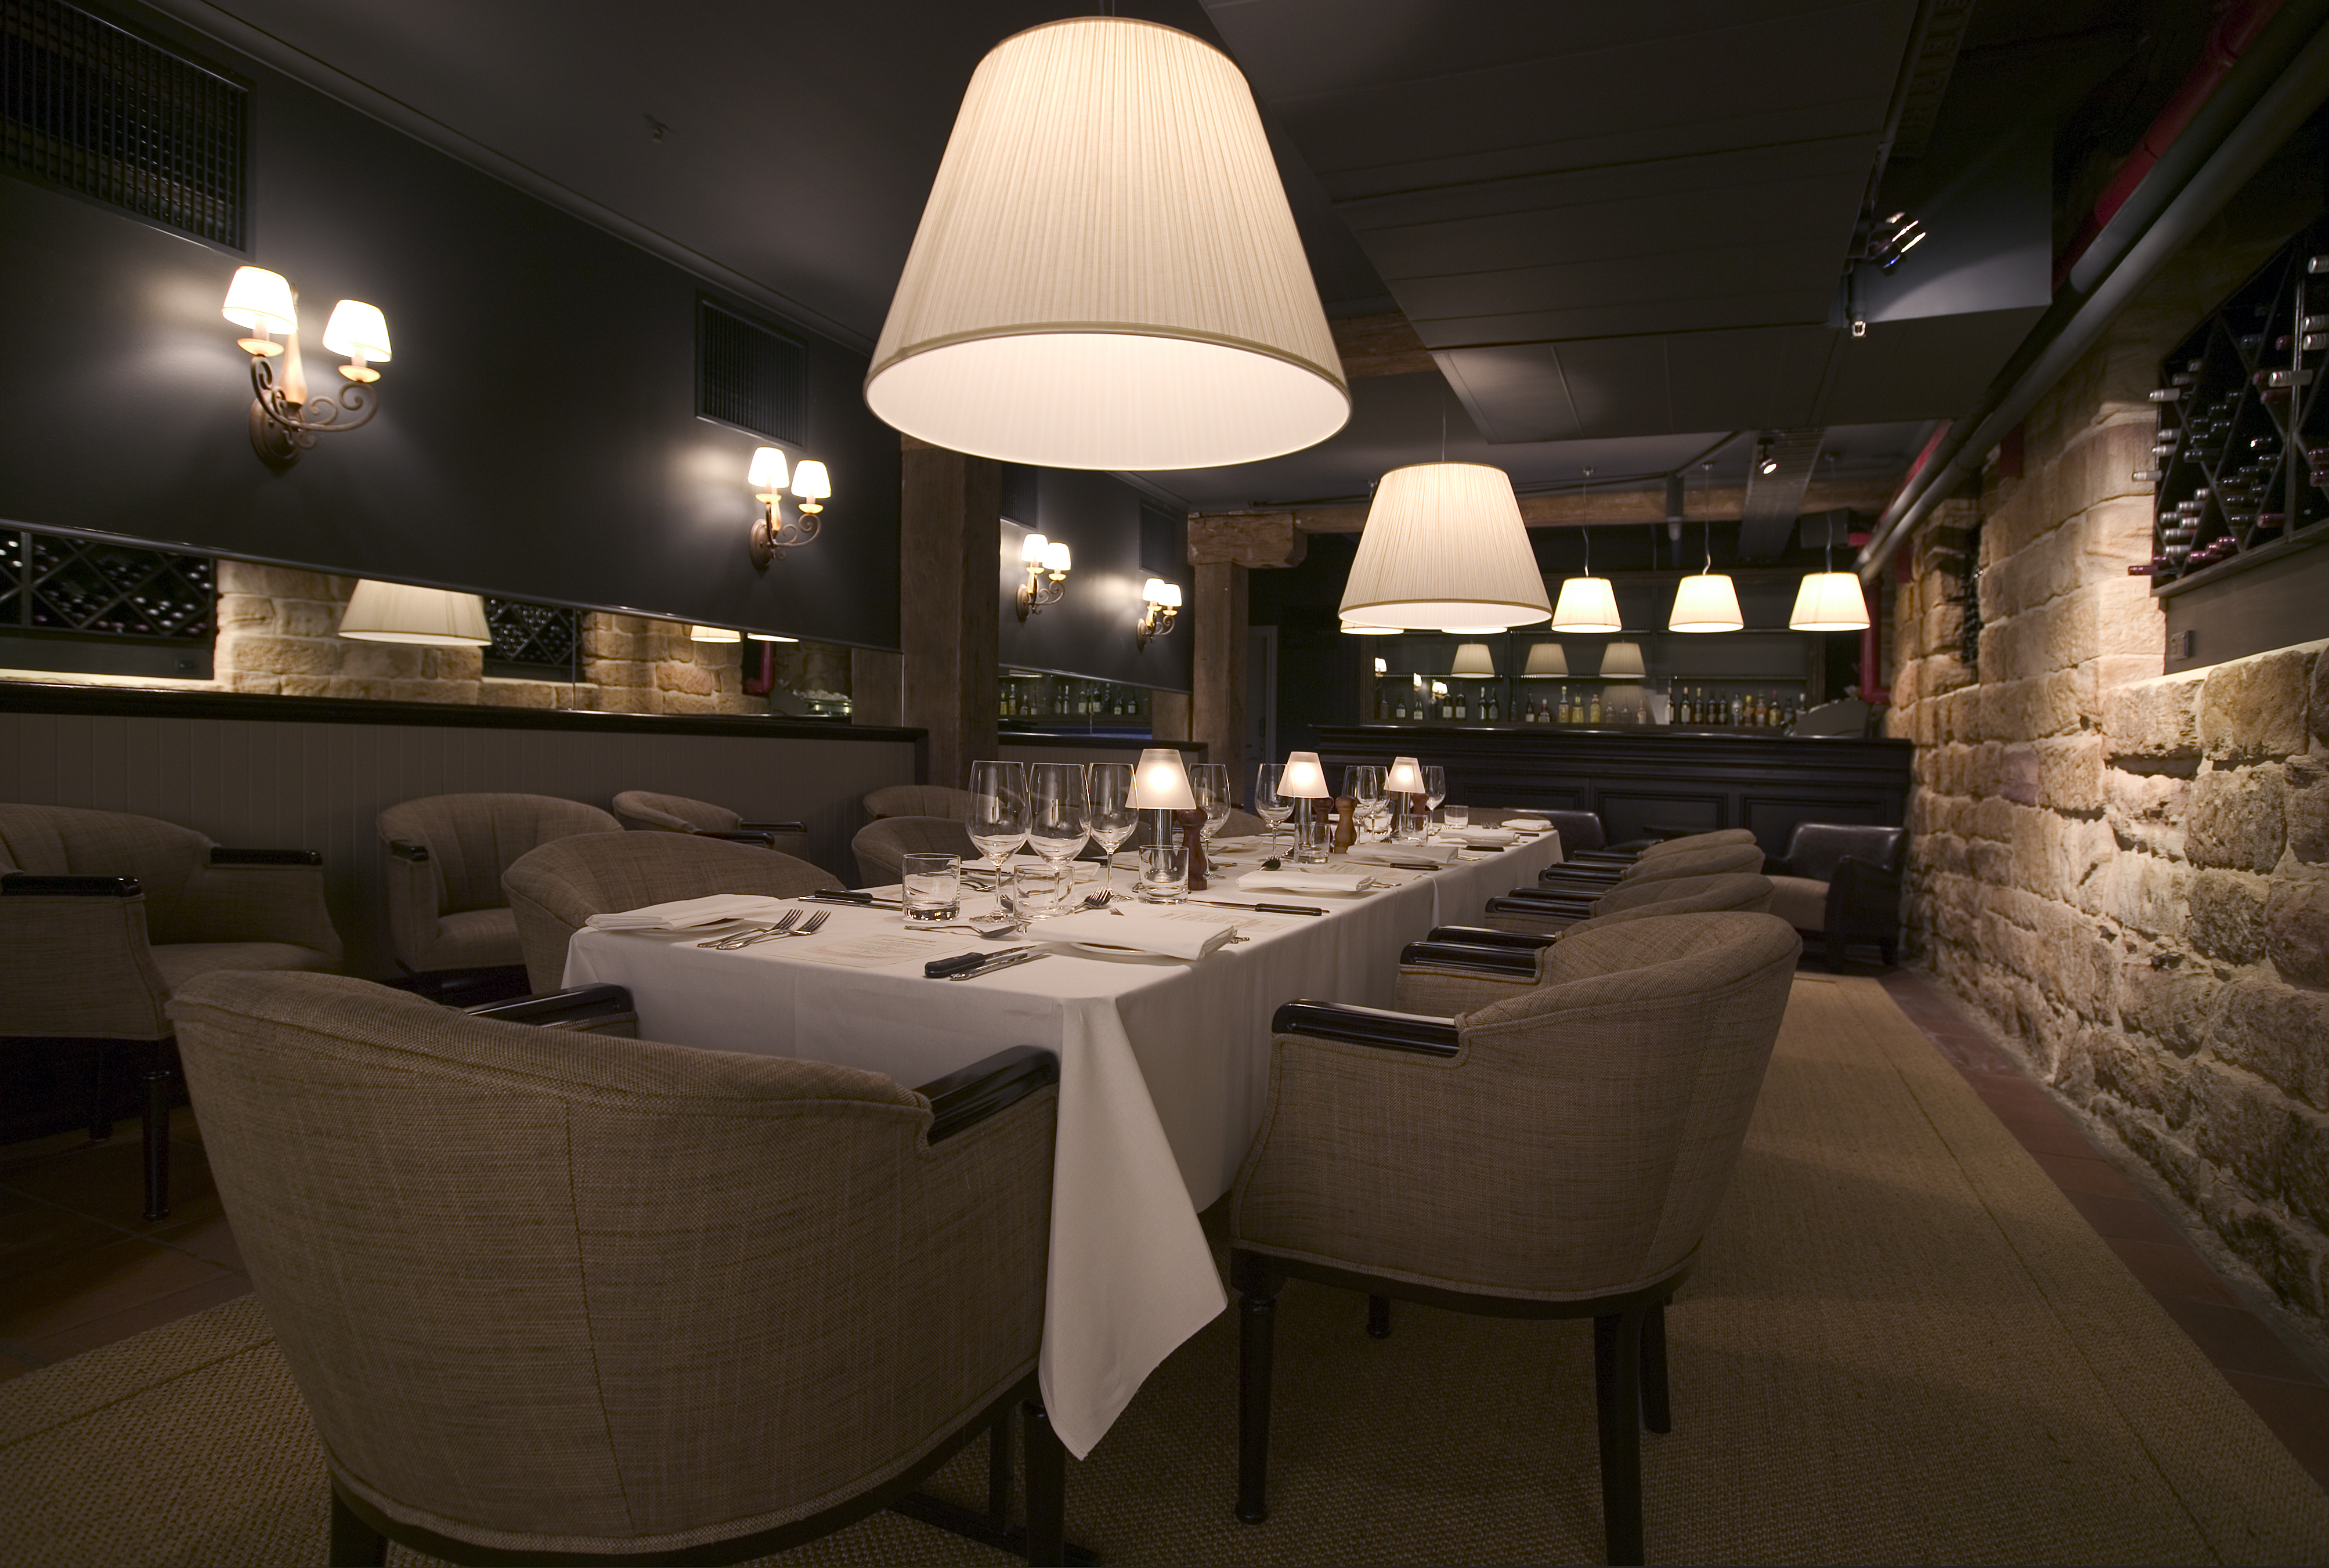 Best Private Dining Rooms In Sydney Best Private Dining Rooms In Sydney new foto